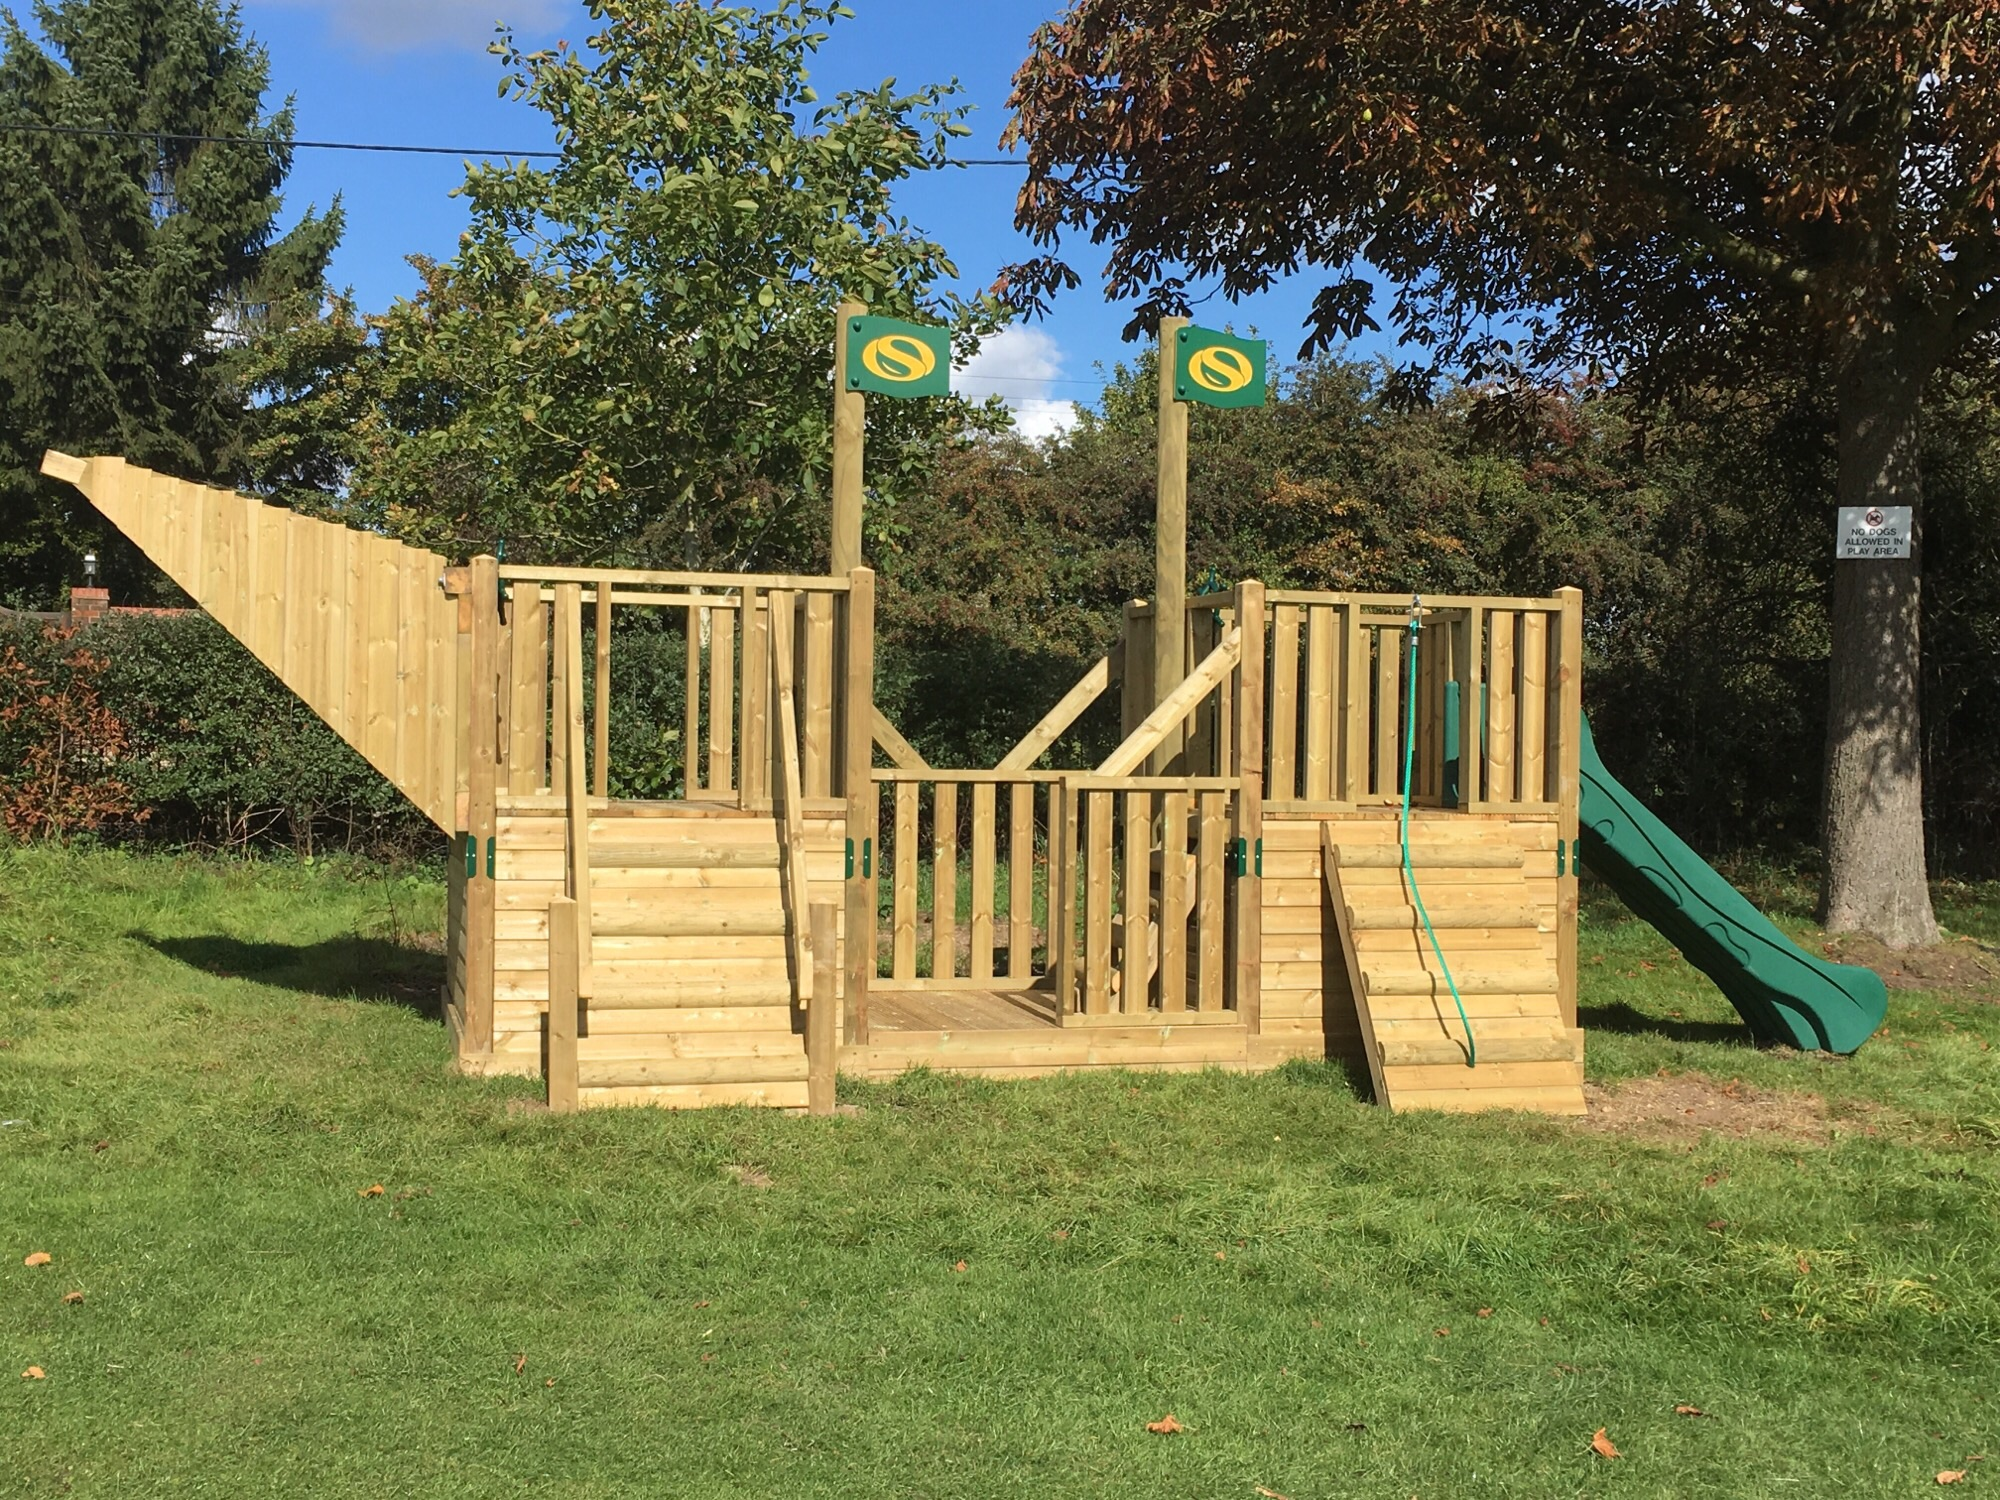 The Brig - the new play equipment